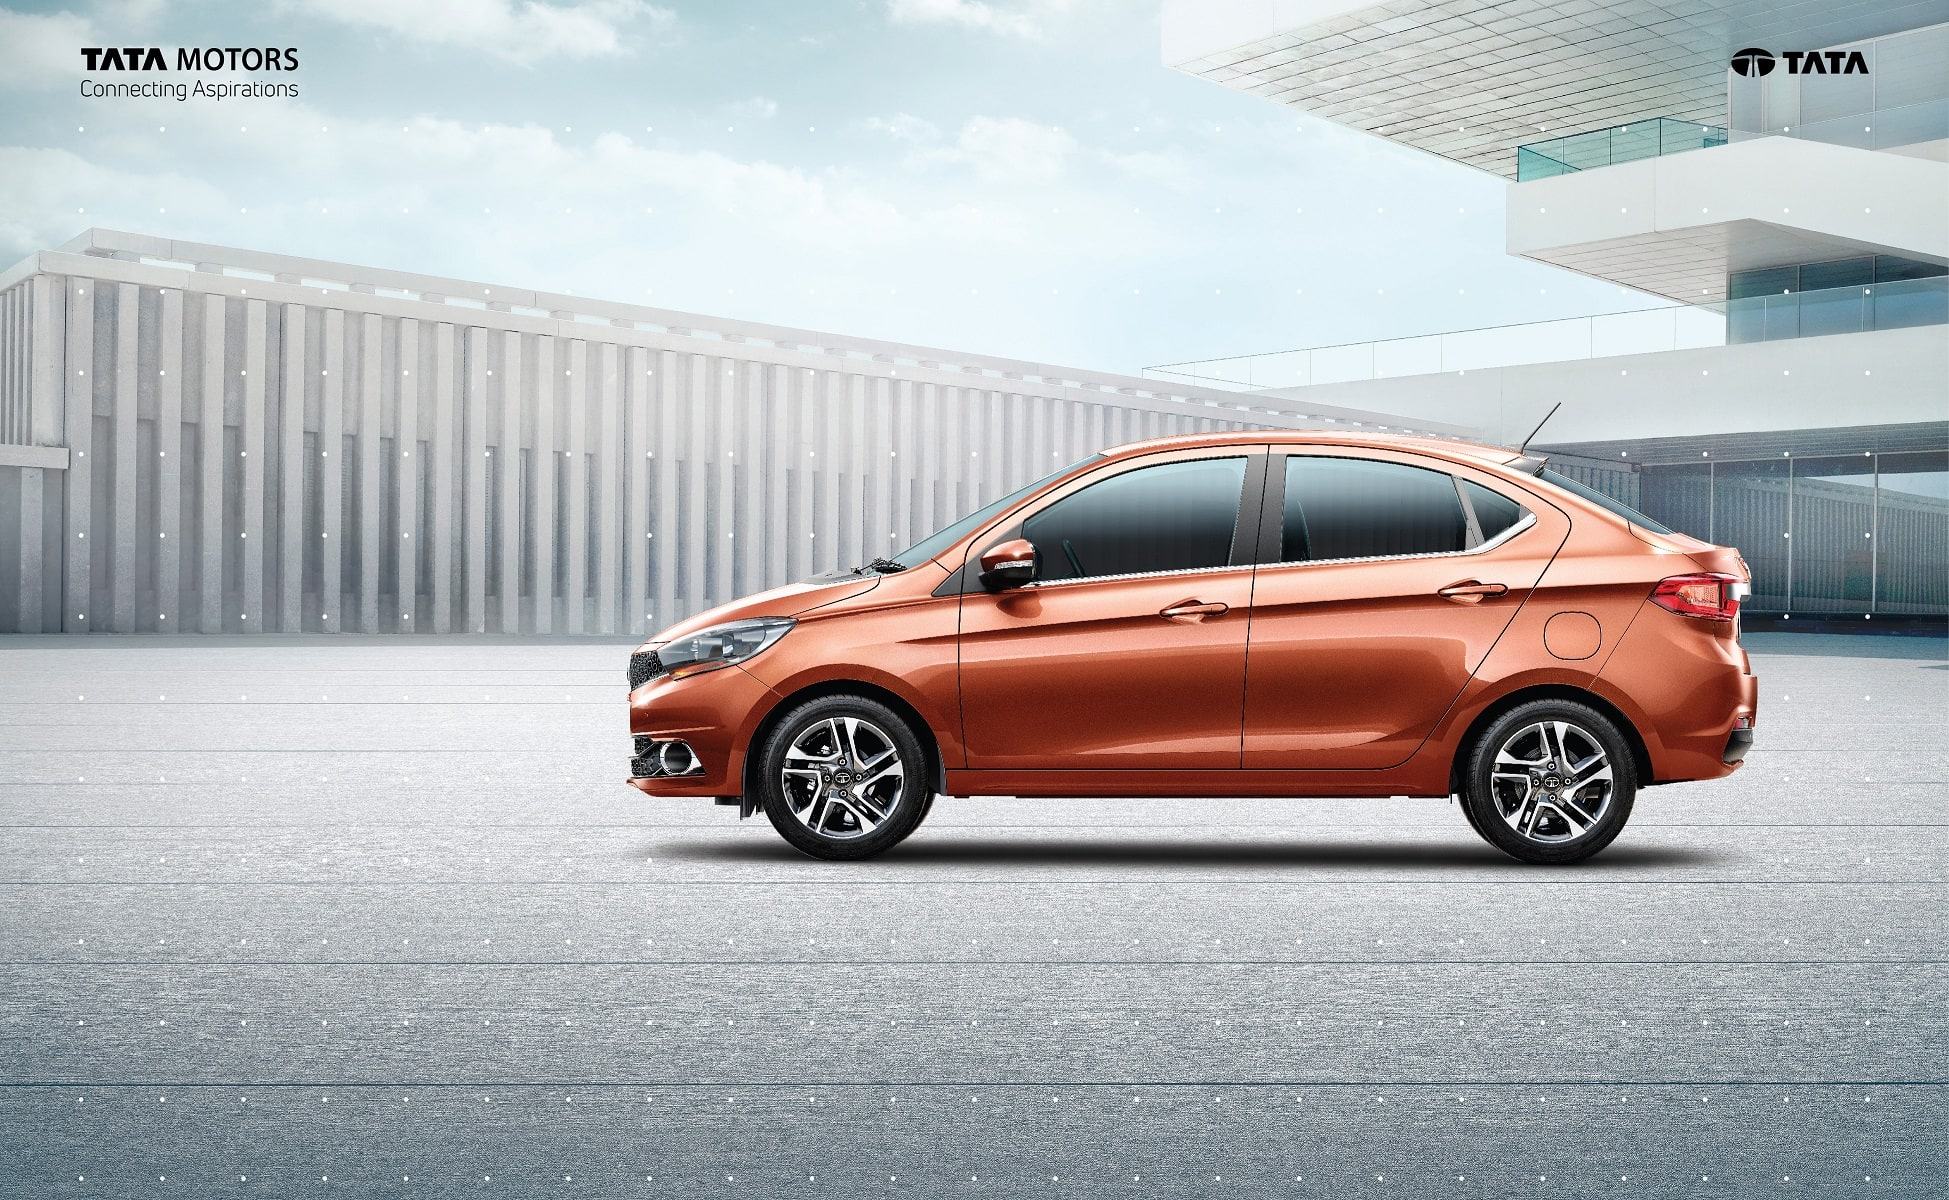 Tata Tigor AMT Launched in India, Price starts from INR 5.75 Lakh